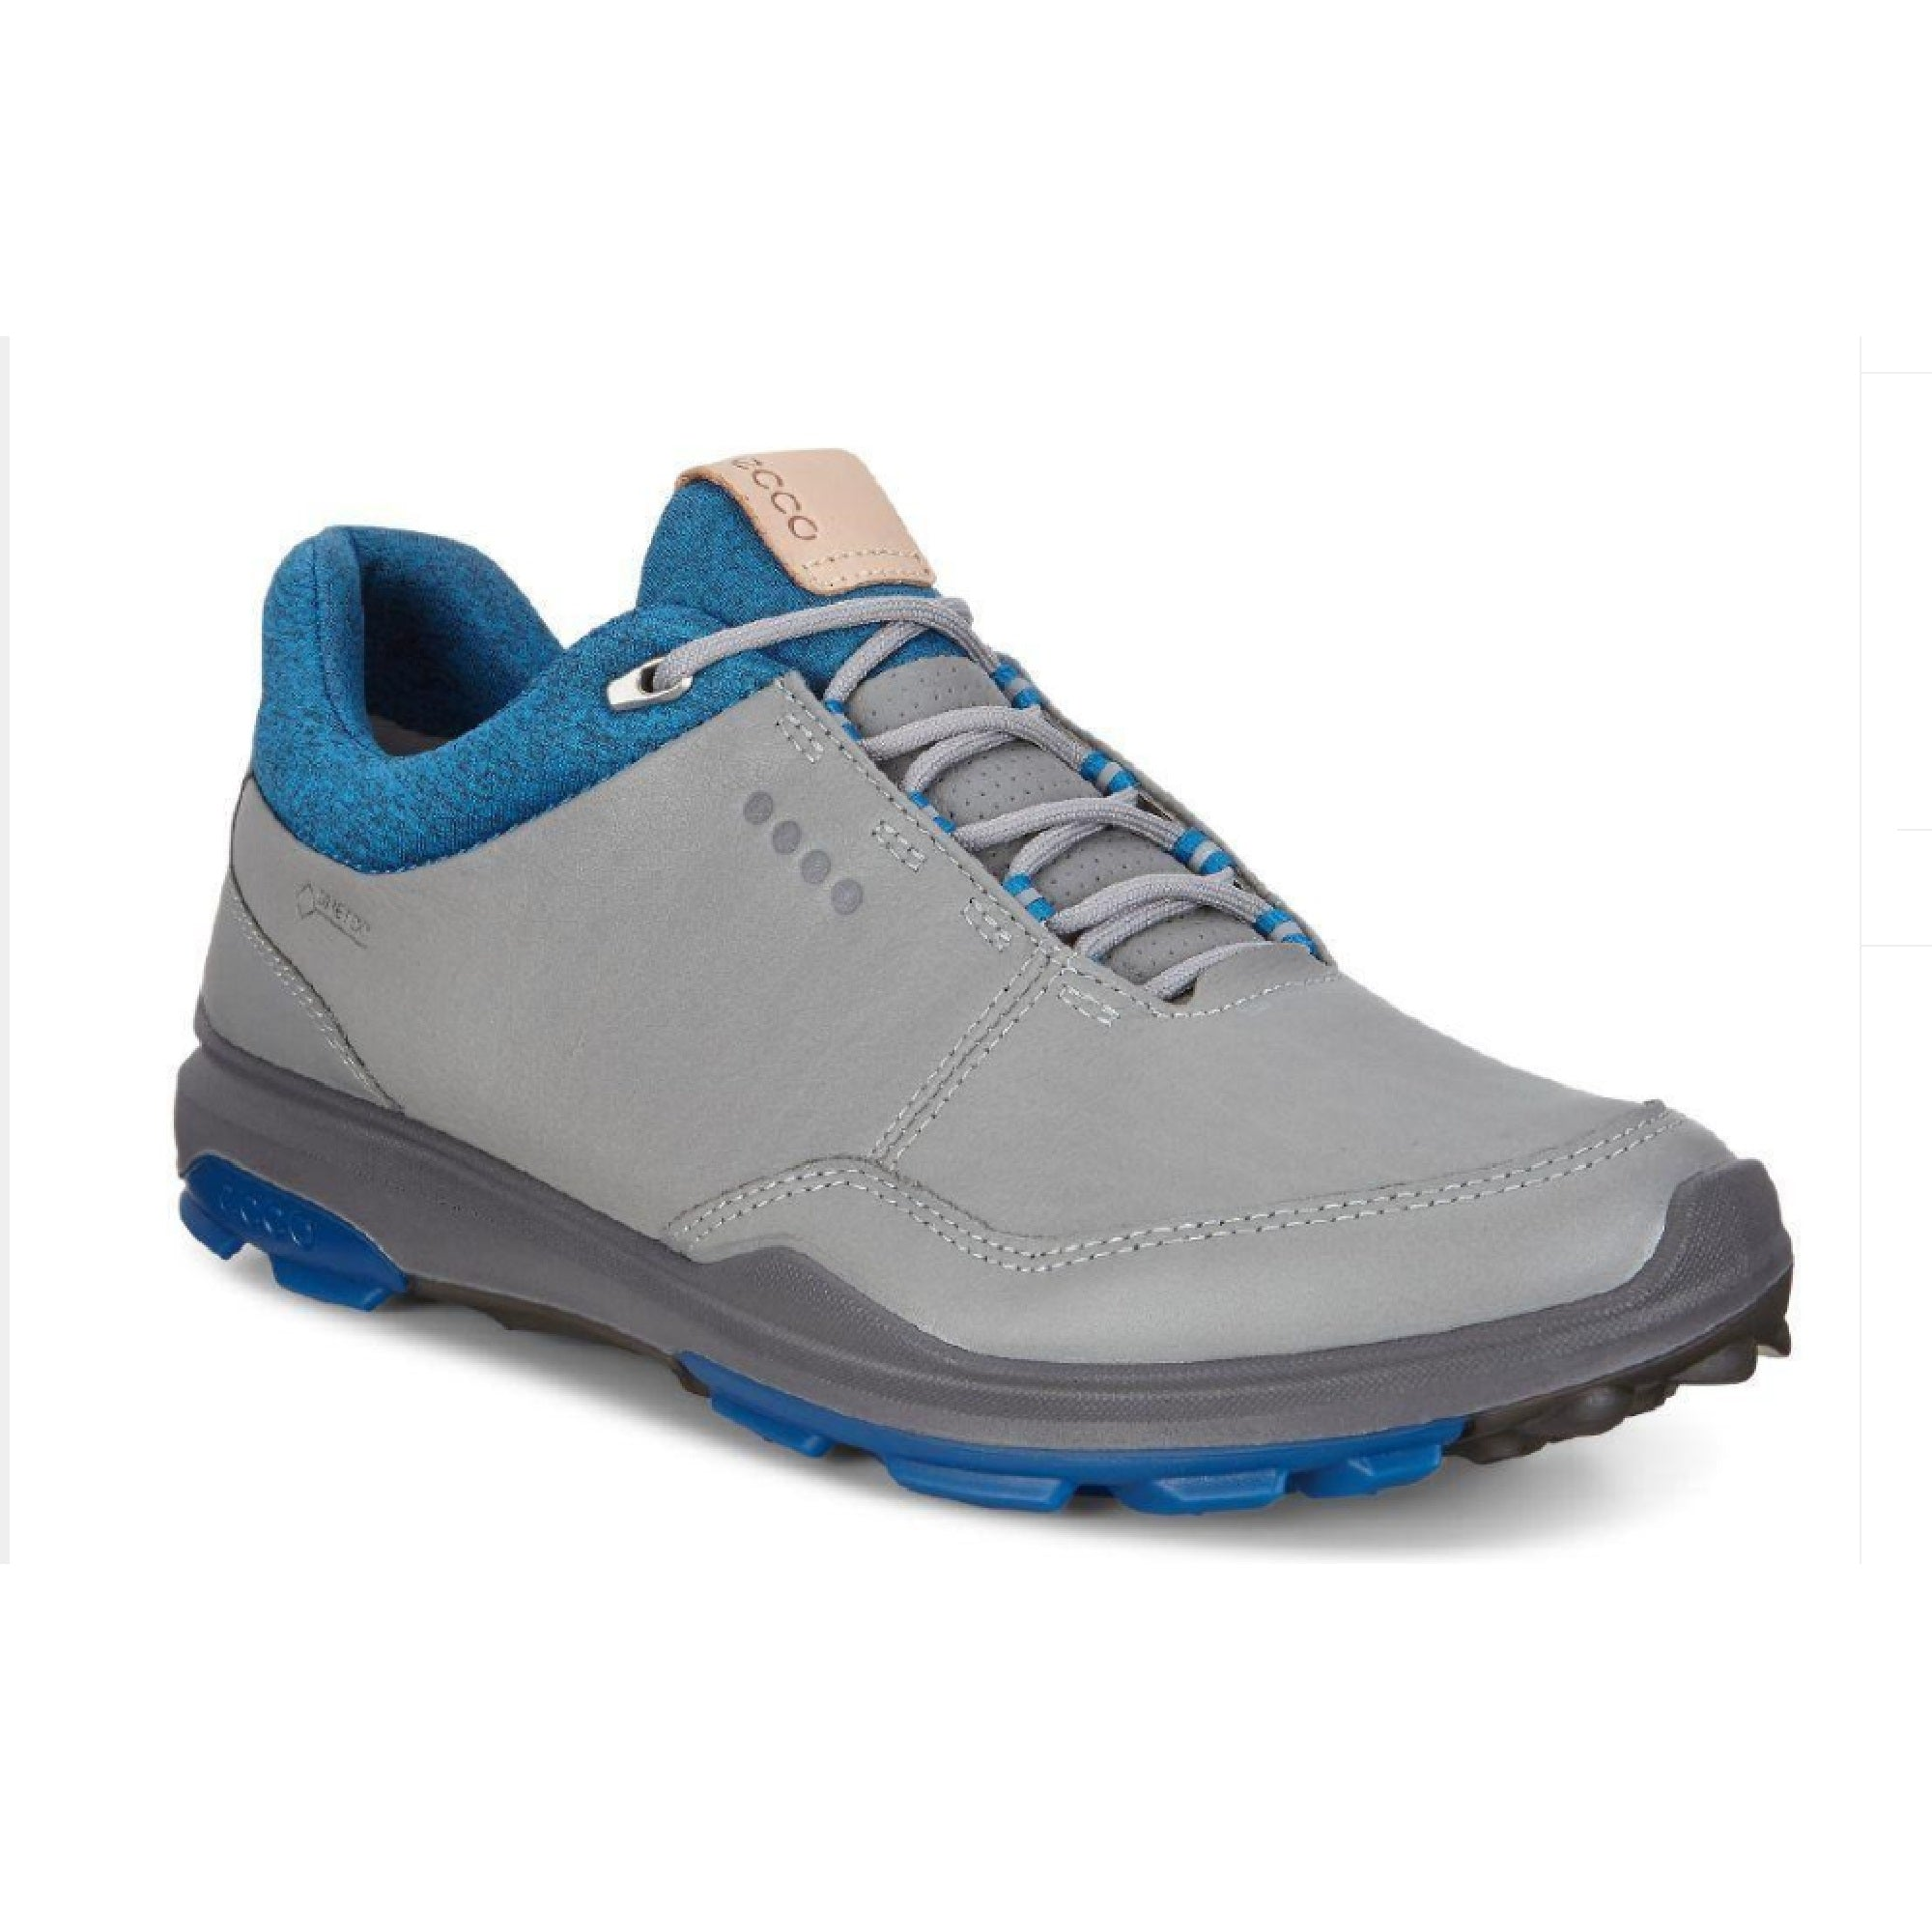 Ecco Biom Hybrid 3 Gore-Tex Golf Shoe 155804